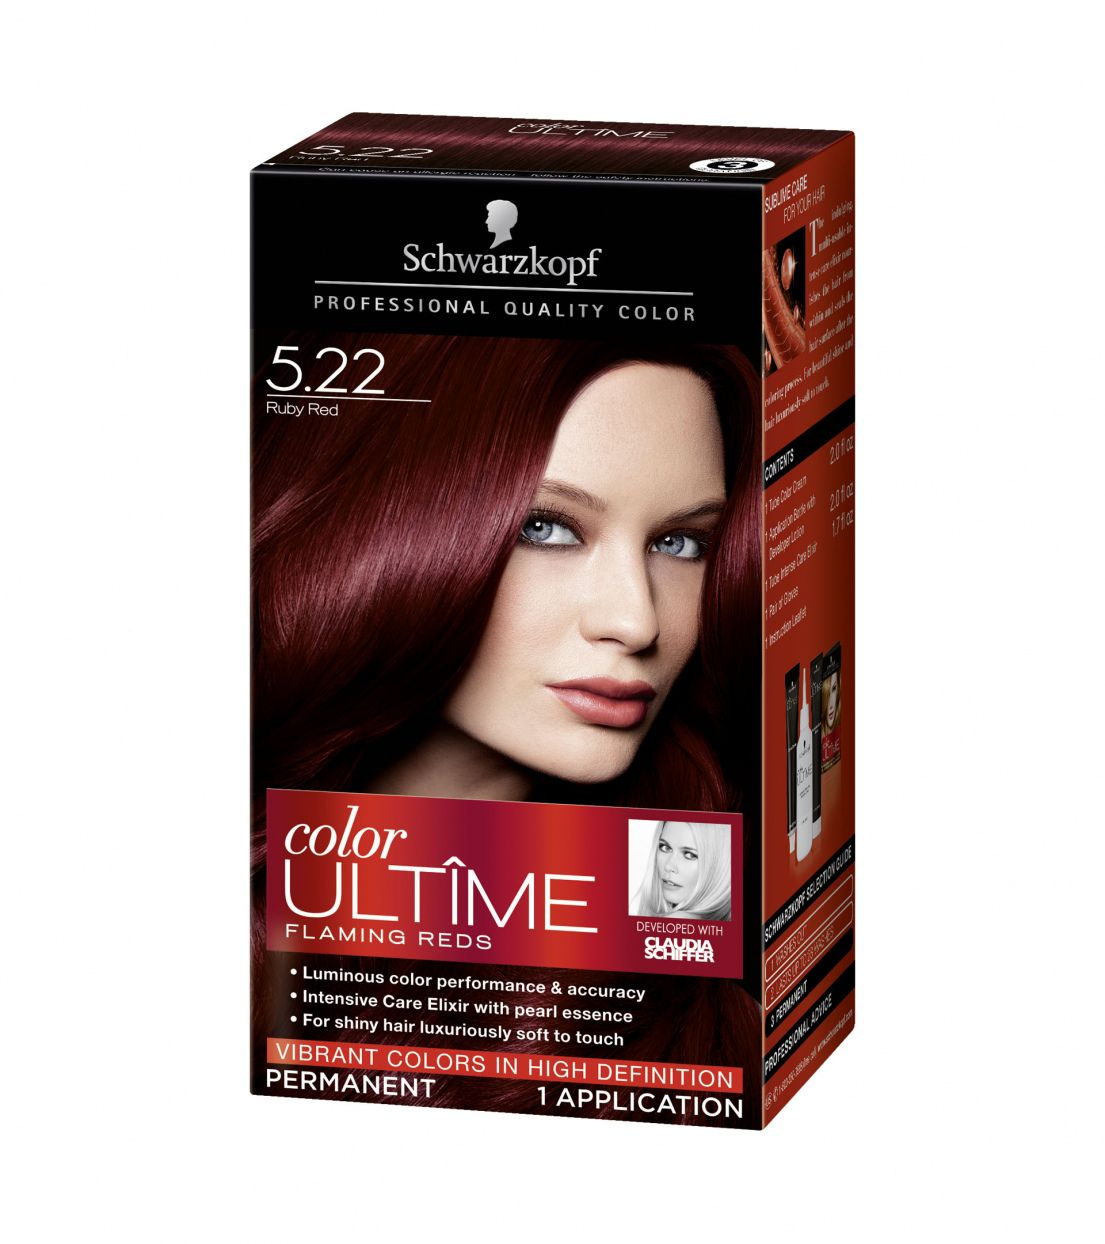 Ruby Red Hair Color Best Hair Color For Dark Skin Women Check More At Http Frenzyhairstudio Com R Schwarzkopf Hair Color Hair Color Cream Schwarzkopf Color